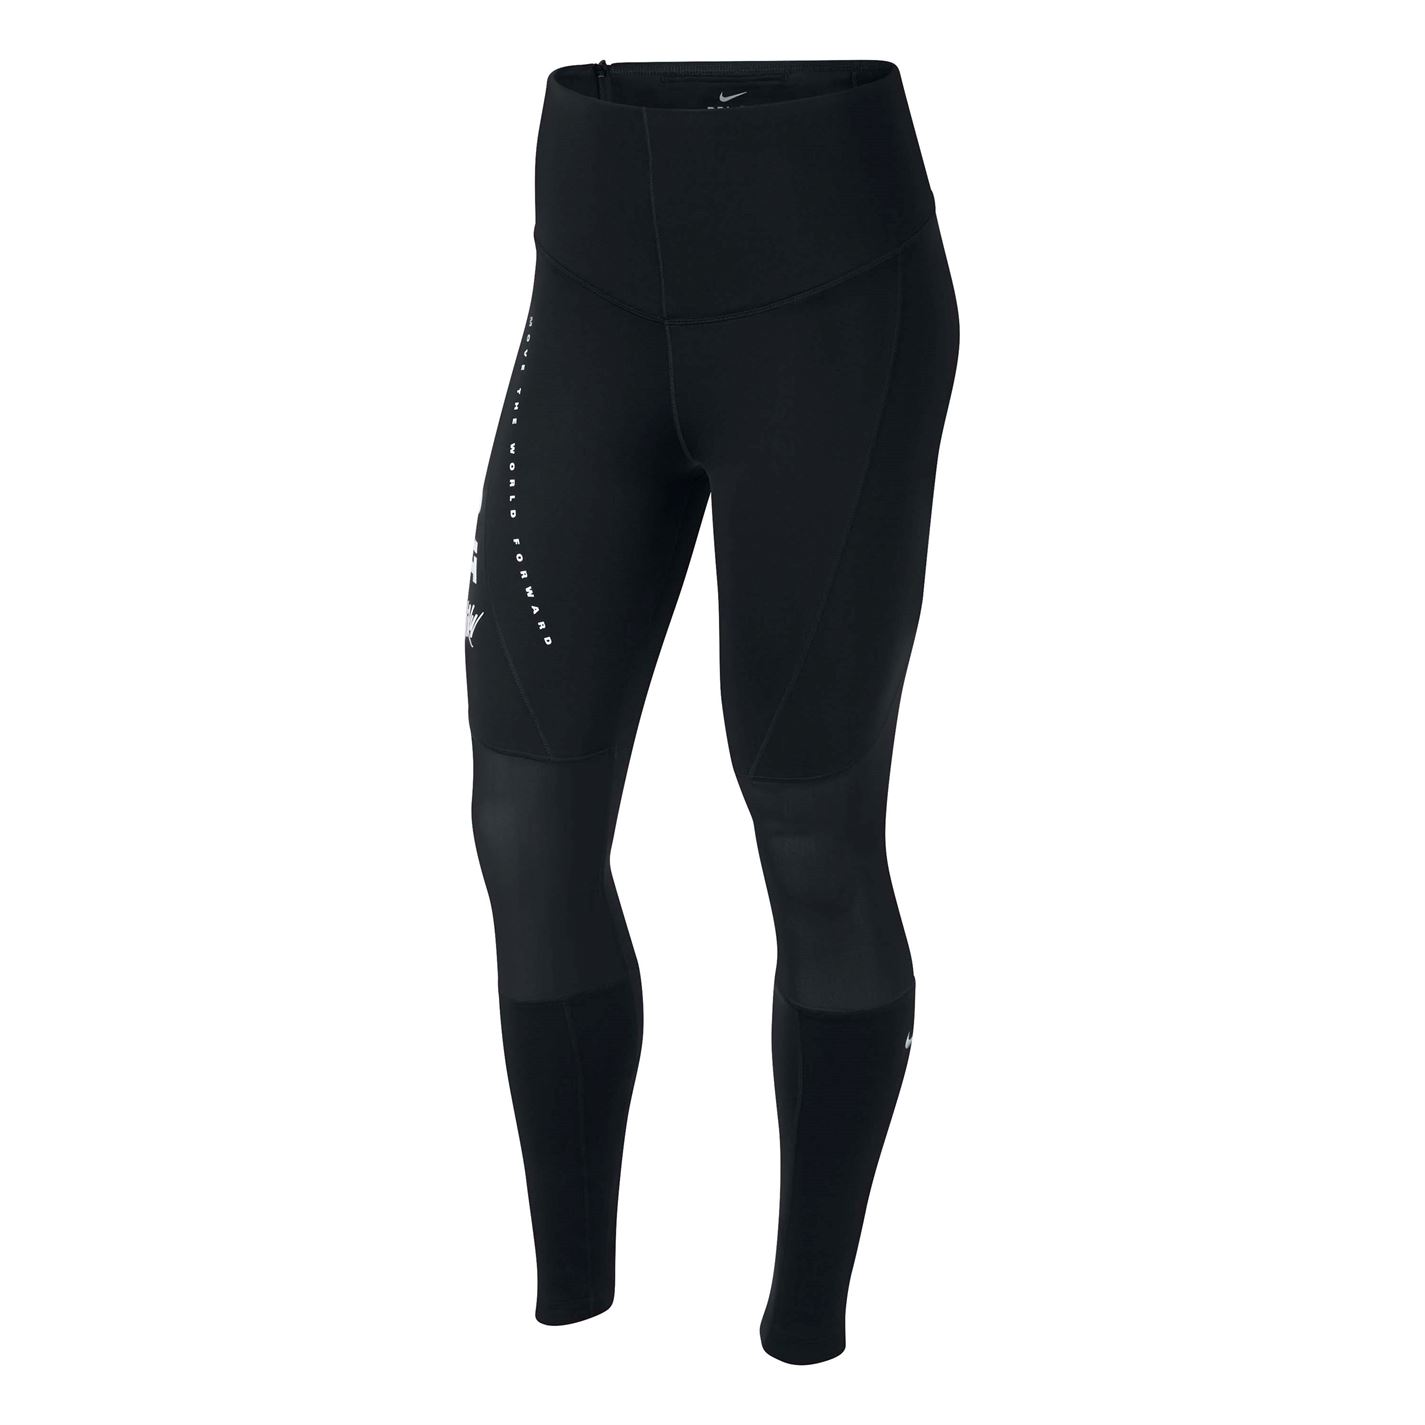 d74347f806842d Tajice Nike Sport Distort Tights Ladies Bijela - Jeftinije.hr